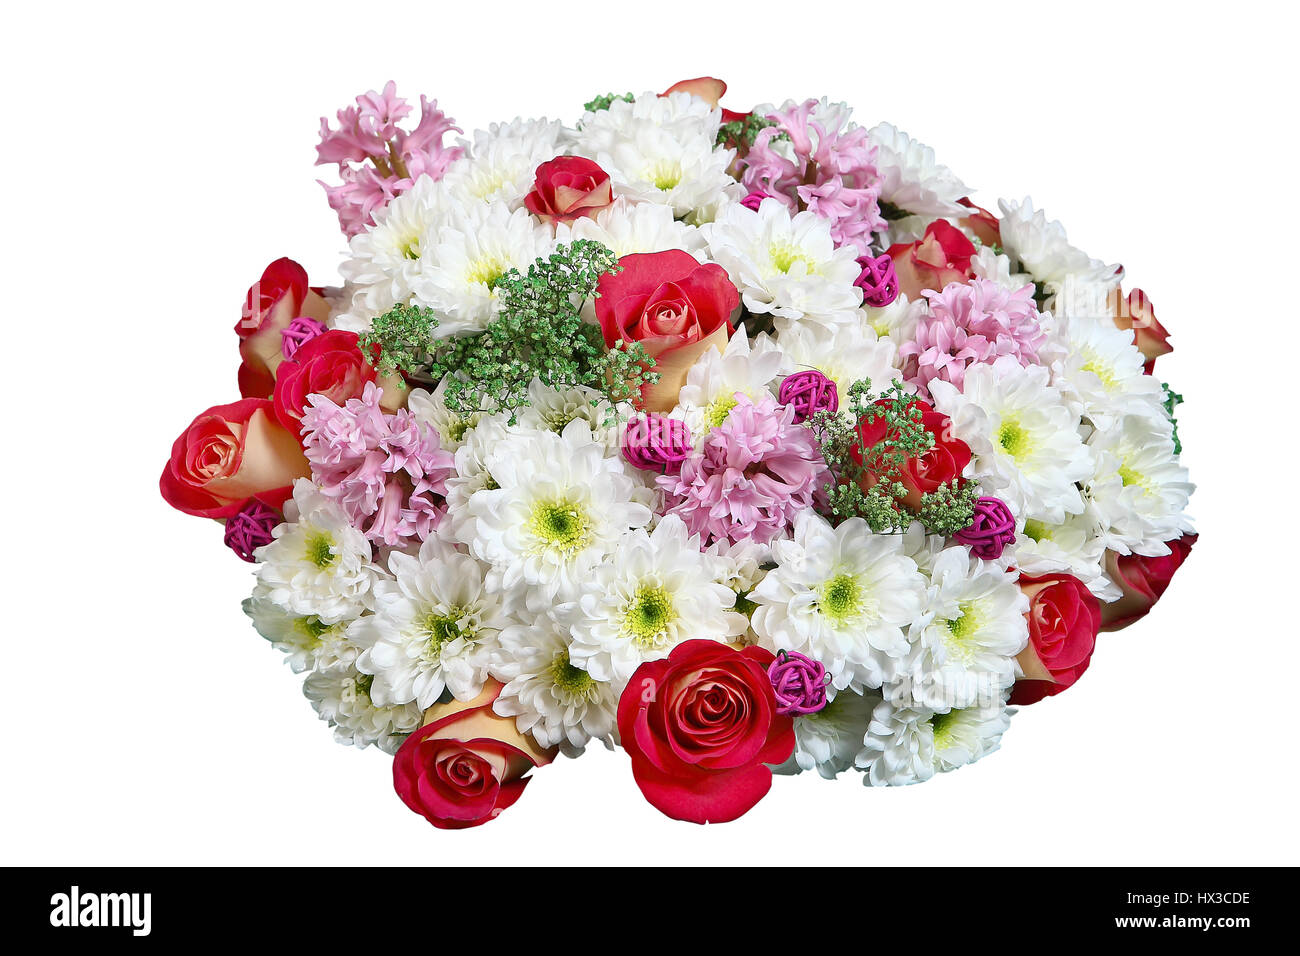 Flower Arrangement White Chrysanthemum And Red Roses In Floral